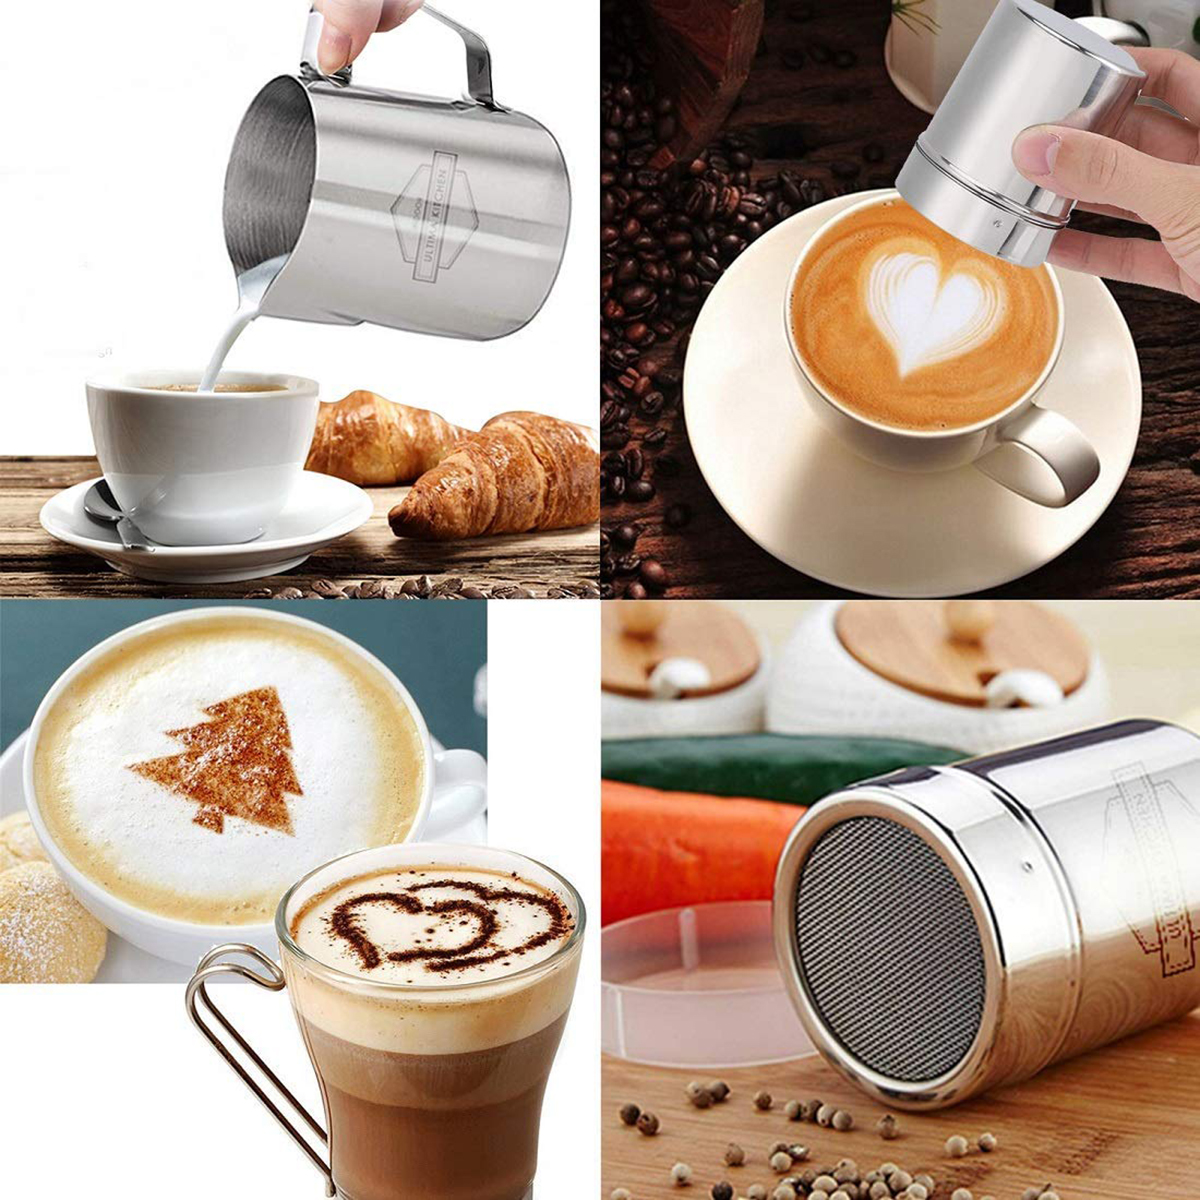 H6e1b295910ab4ec1a52df1567d0c3036G YAJIAO USB Rechargeable Blender Milk Frother Handheld Electric Mixer Foam Maker Stainless Whisk 3 Speed for Coffee Cappuccino